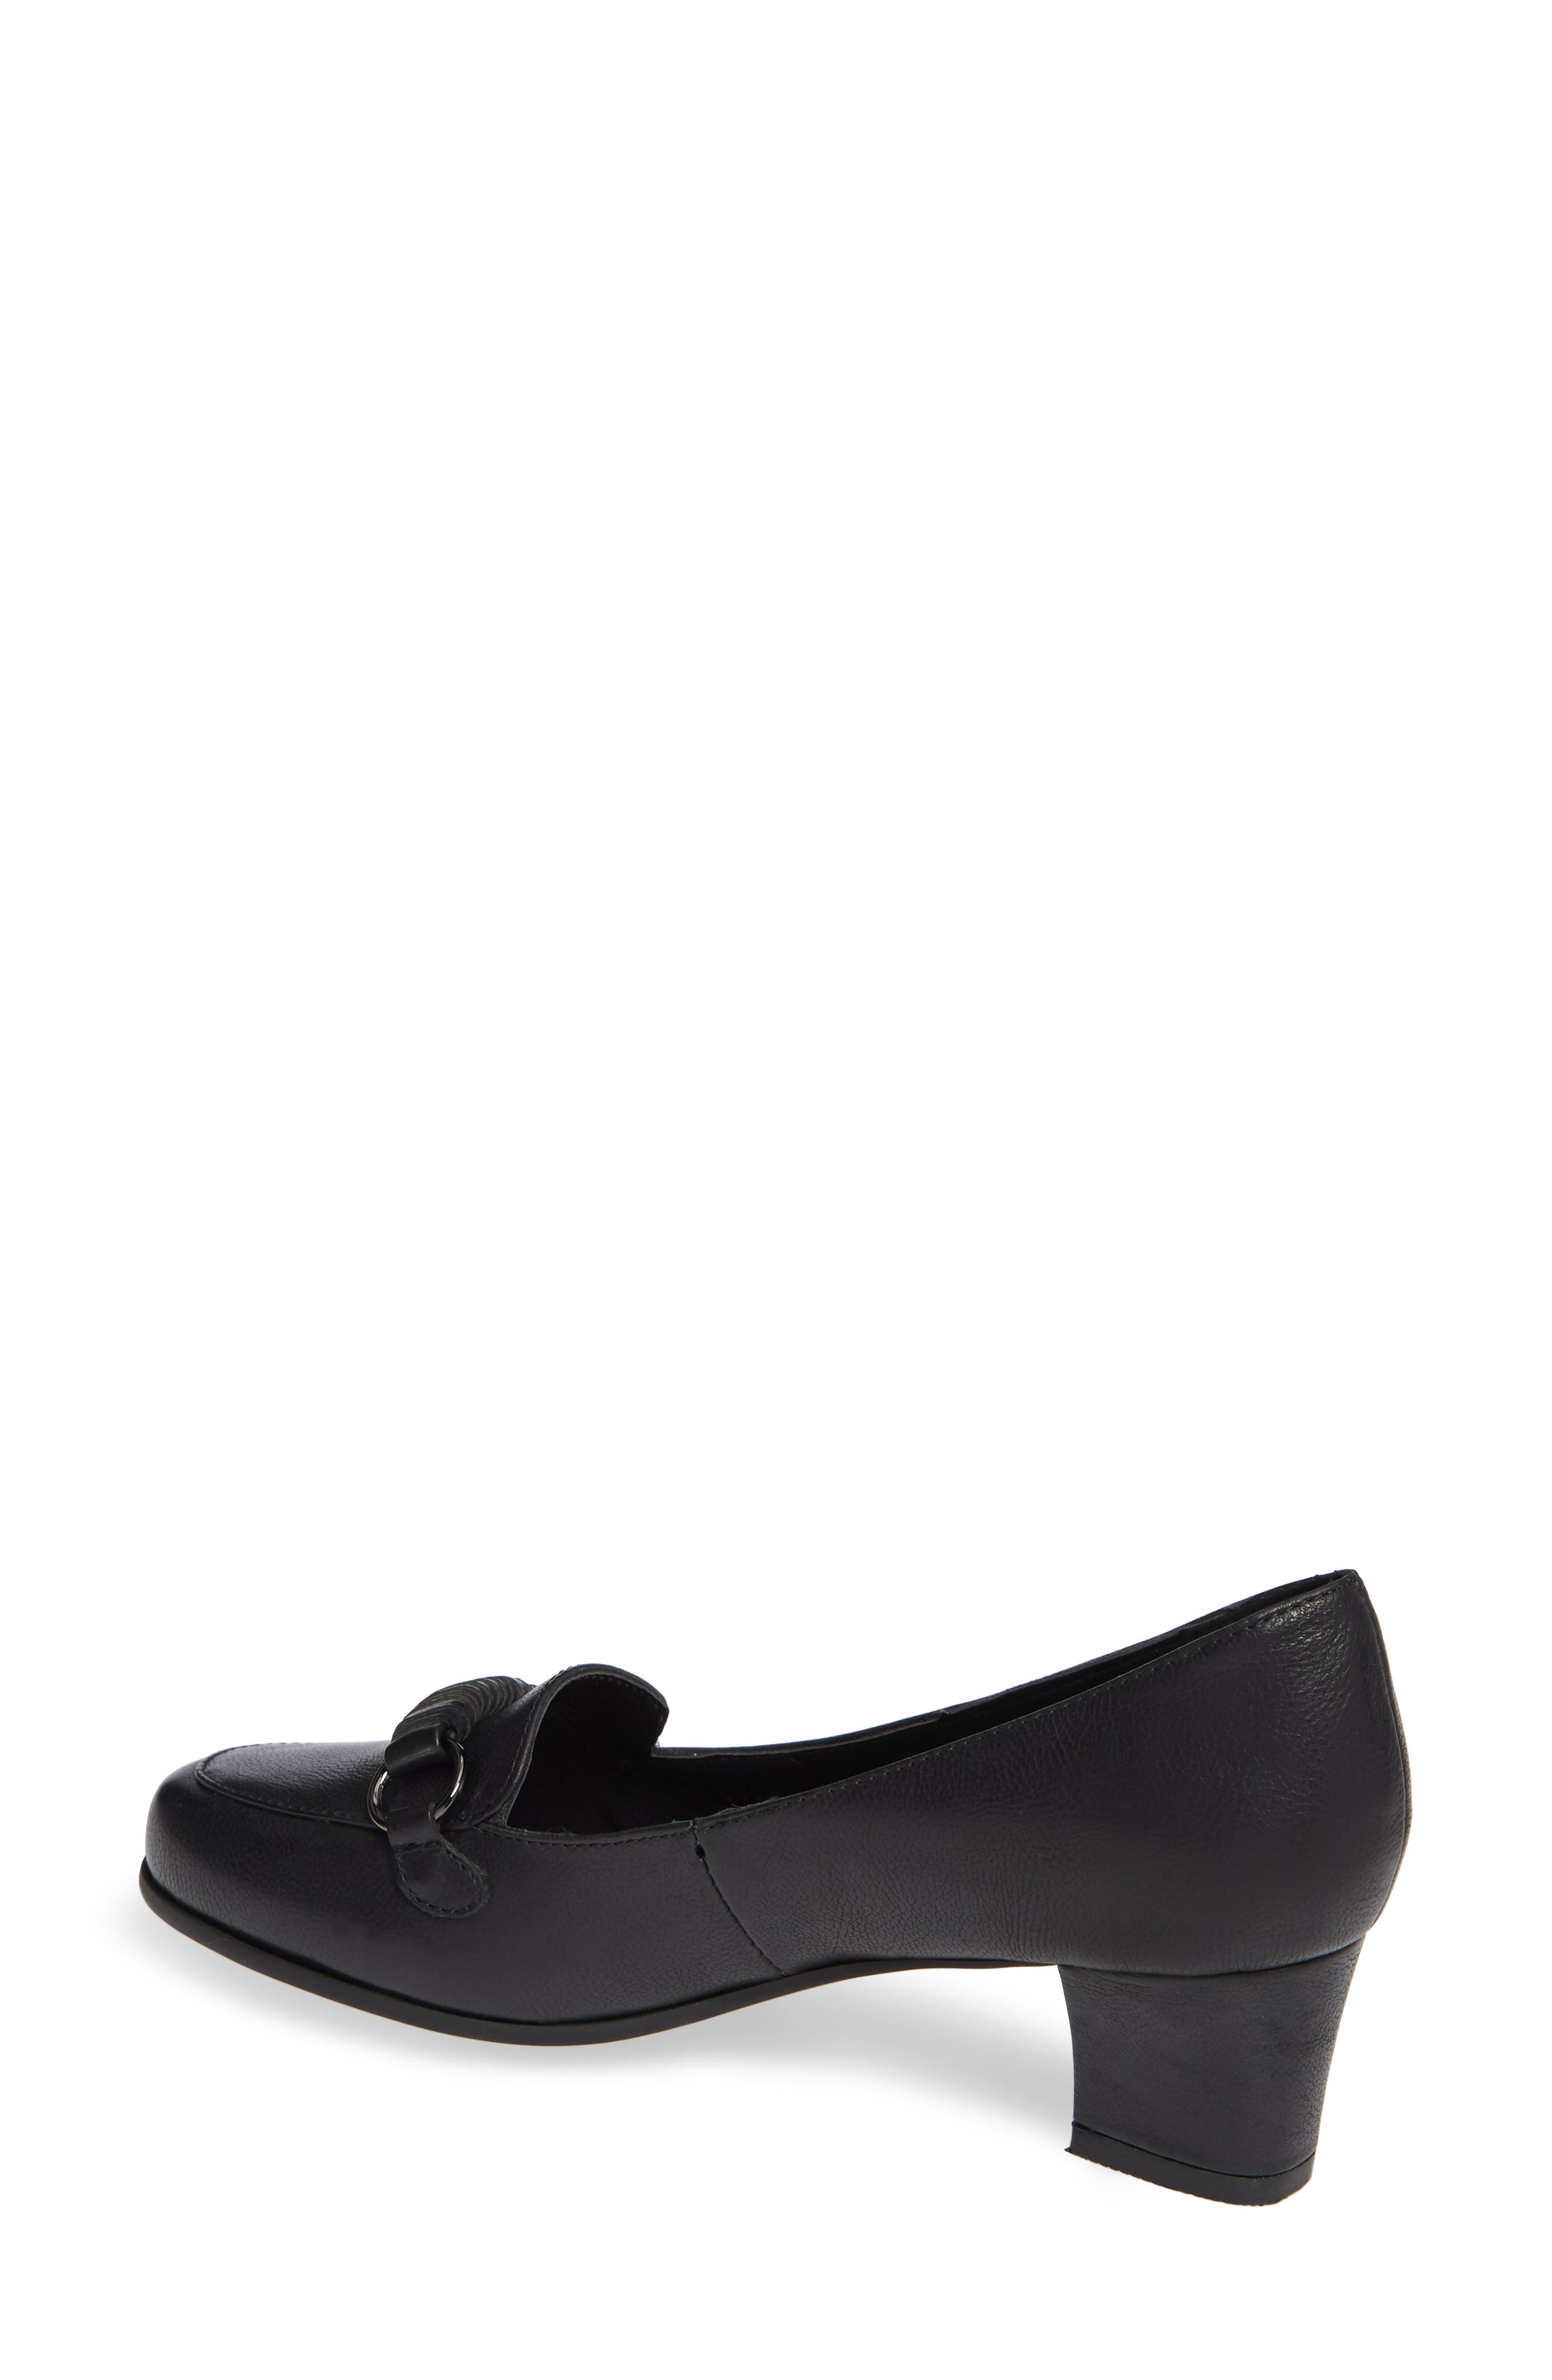 Perky Loafer Pump,                             Alternate thumbnail 2, color,                             BLACK LEATHER